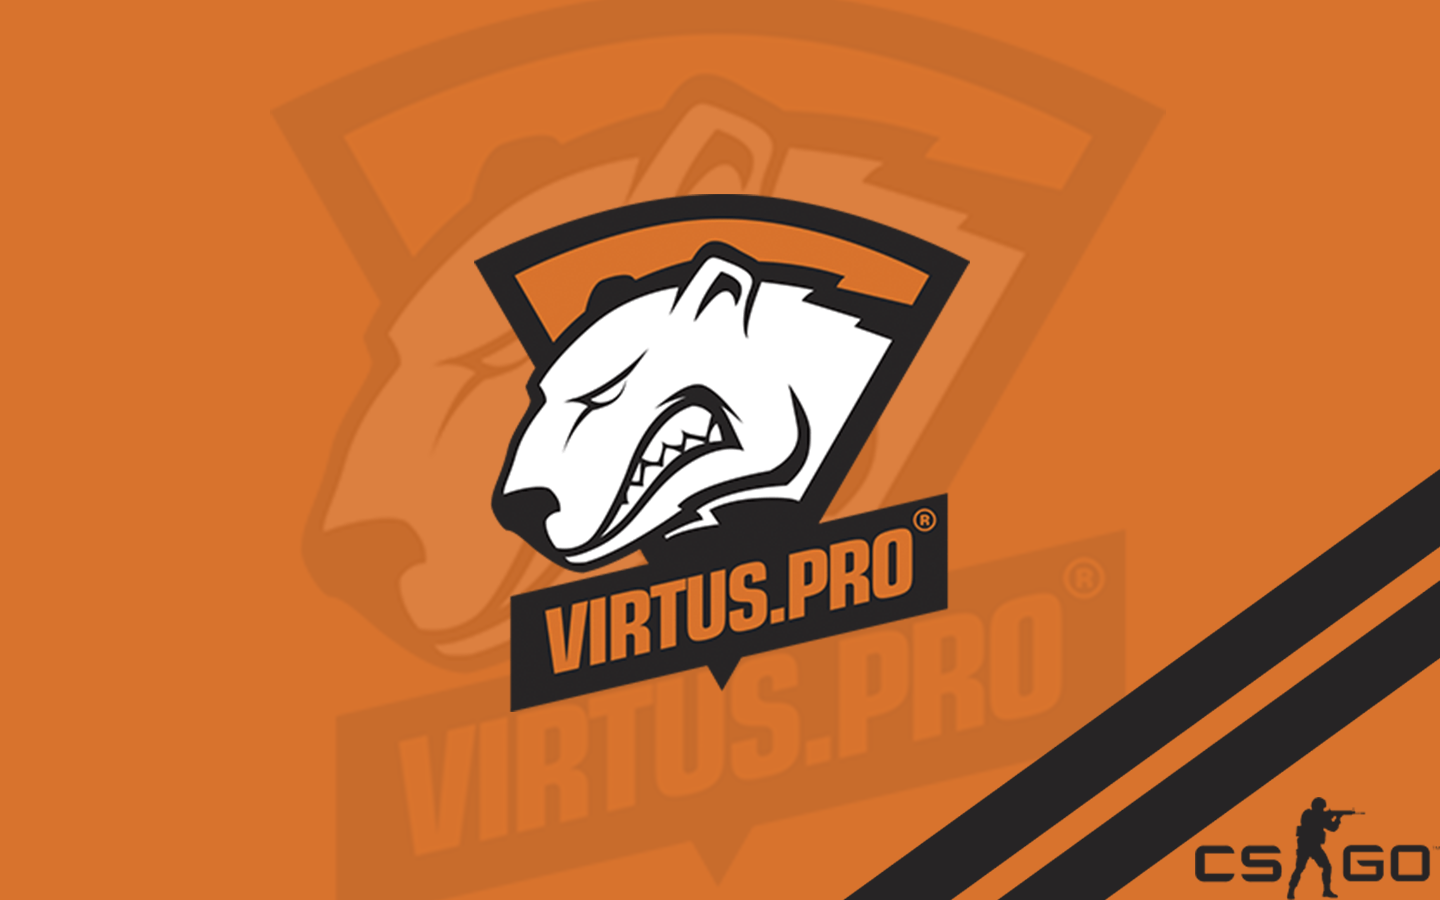 Best Anime Wallpaper Hd Virtus Pro Wins Csgo Starladder I League Invitational 1